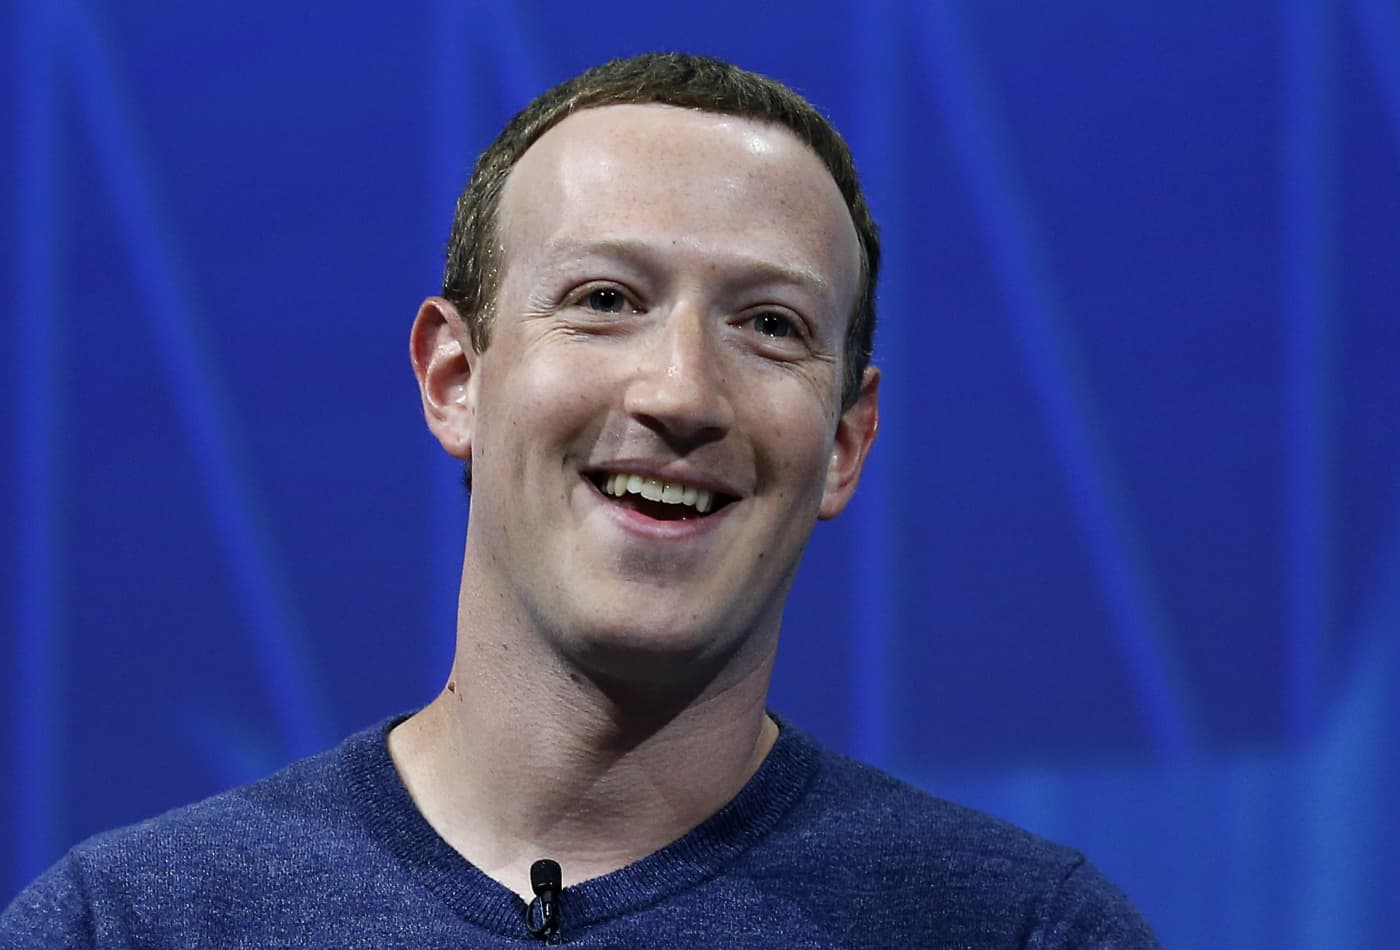 How Facebook CEO Mark Zuckerberg lets his toddlers use screen time